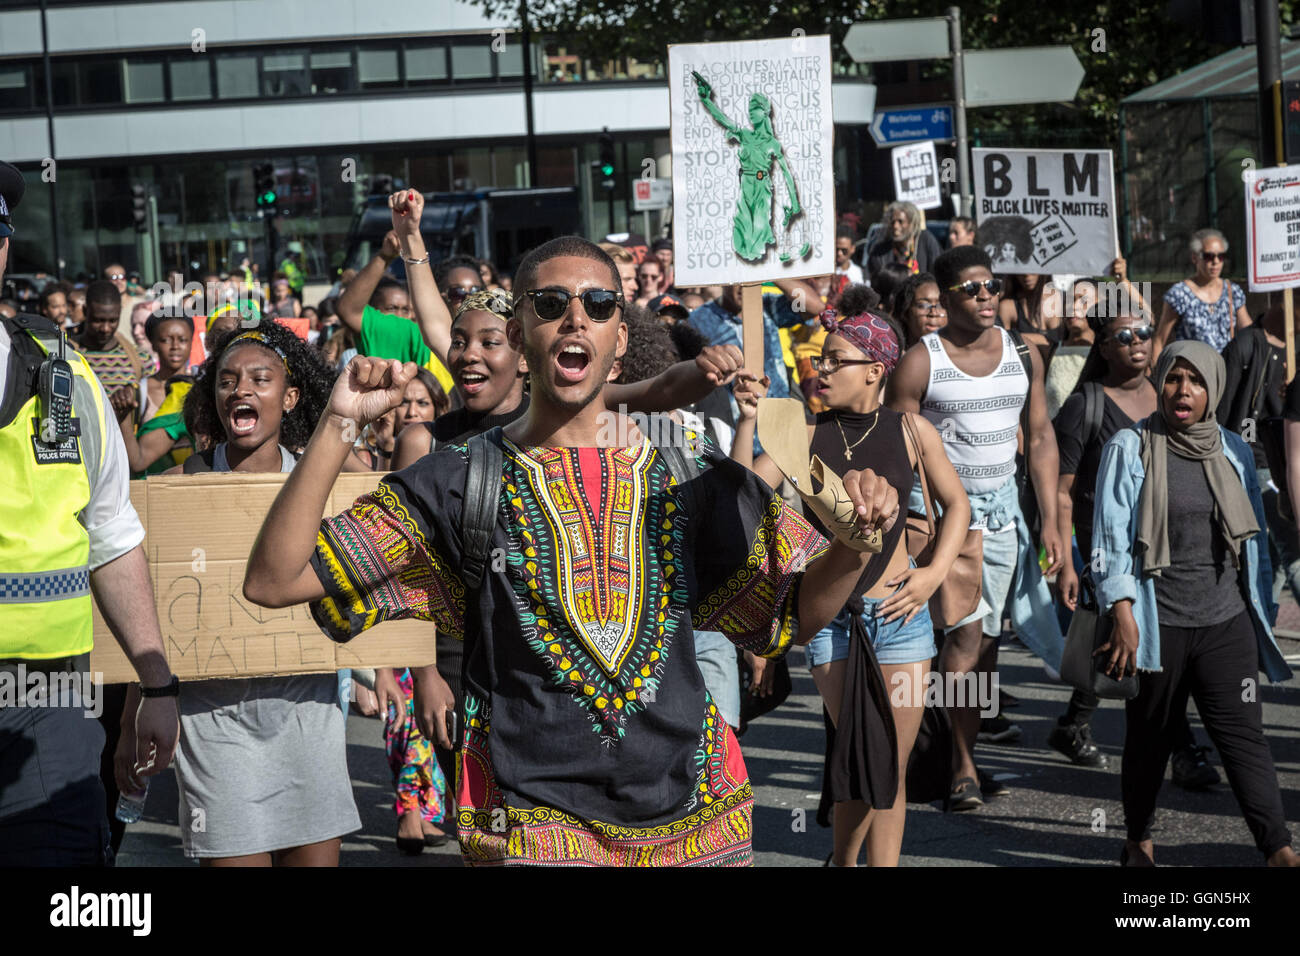 London, UK. 6th August, 2016. Black Lives Matter protest march and demonstration through Westminster towards Downing - Stock Image